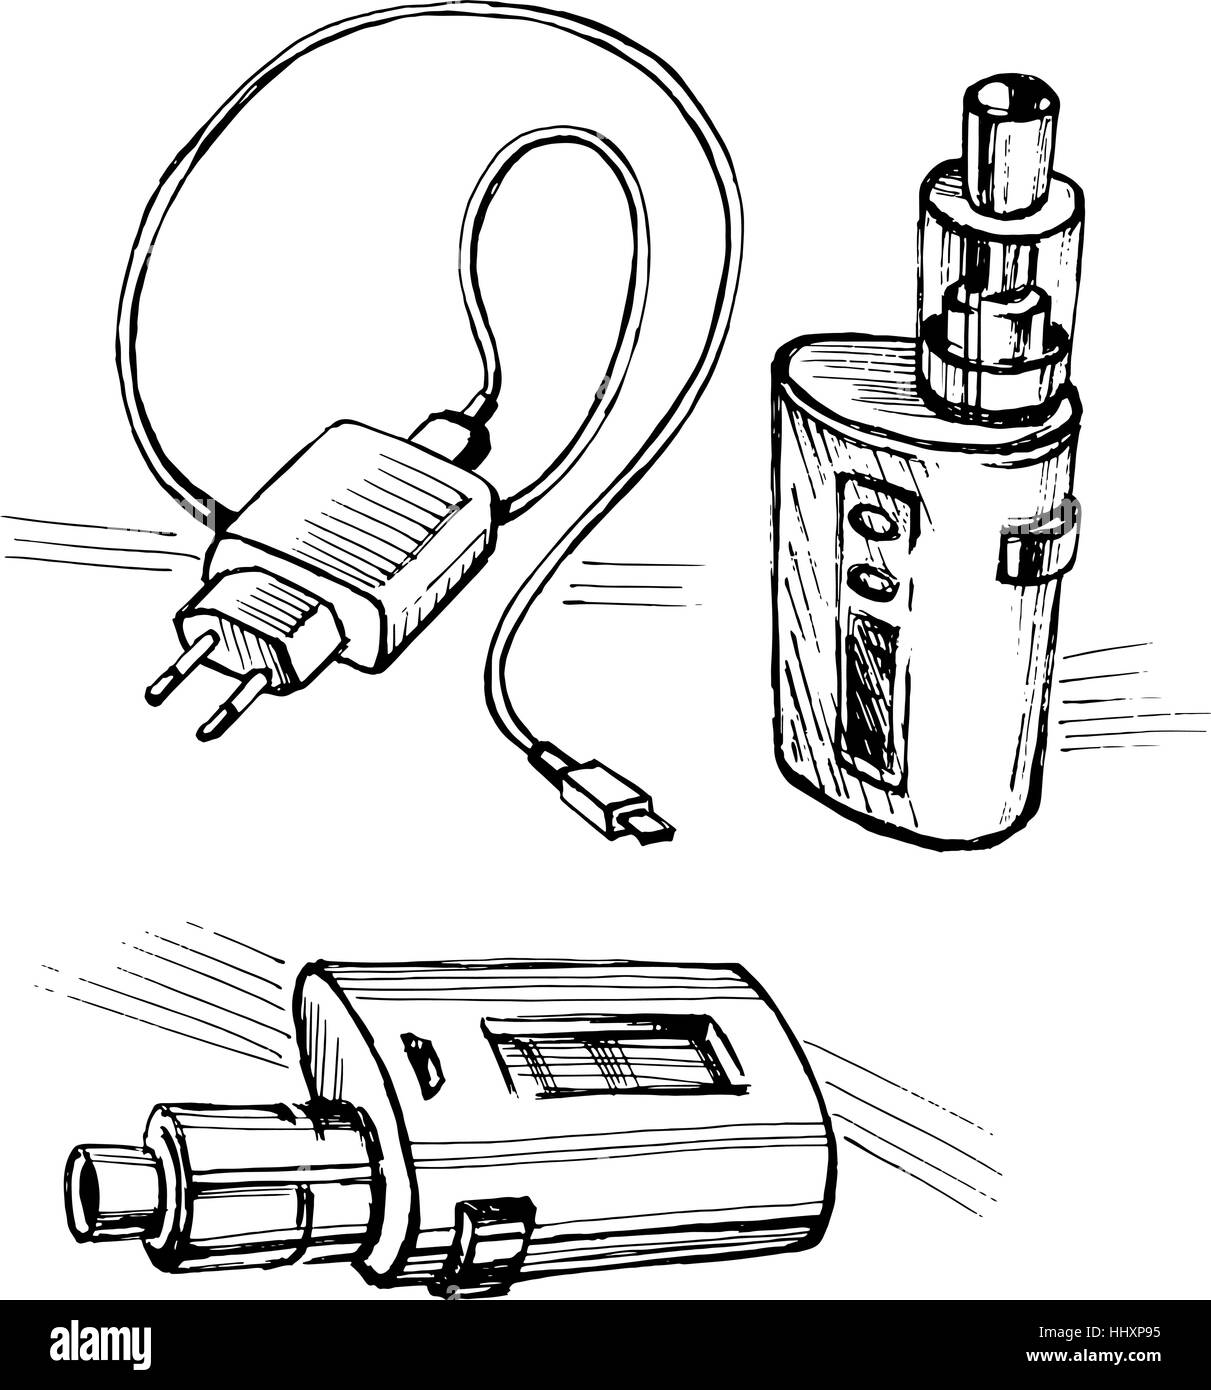 Electronic cigarette USB cable charge - Stock Image